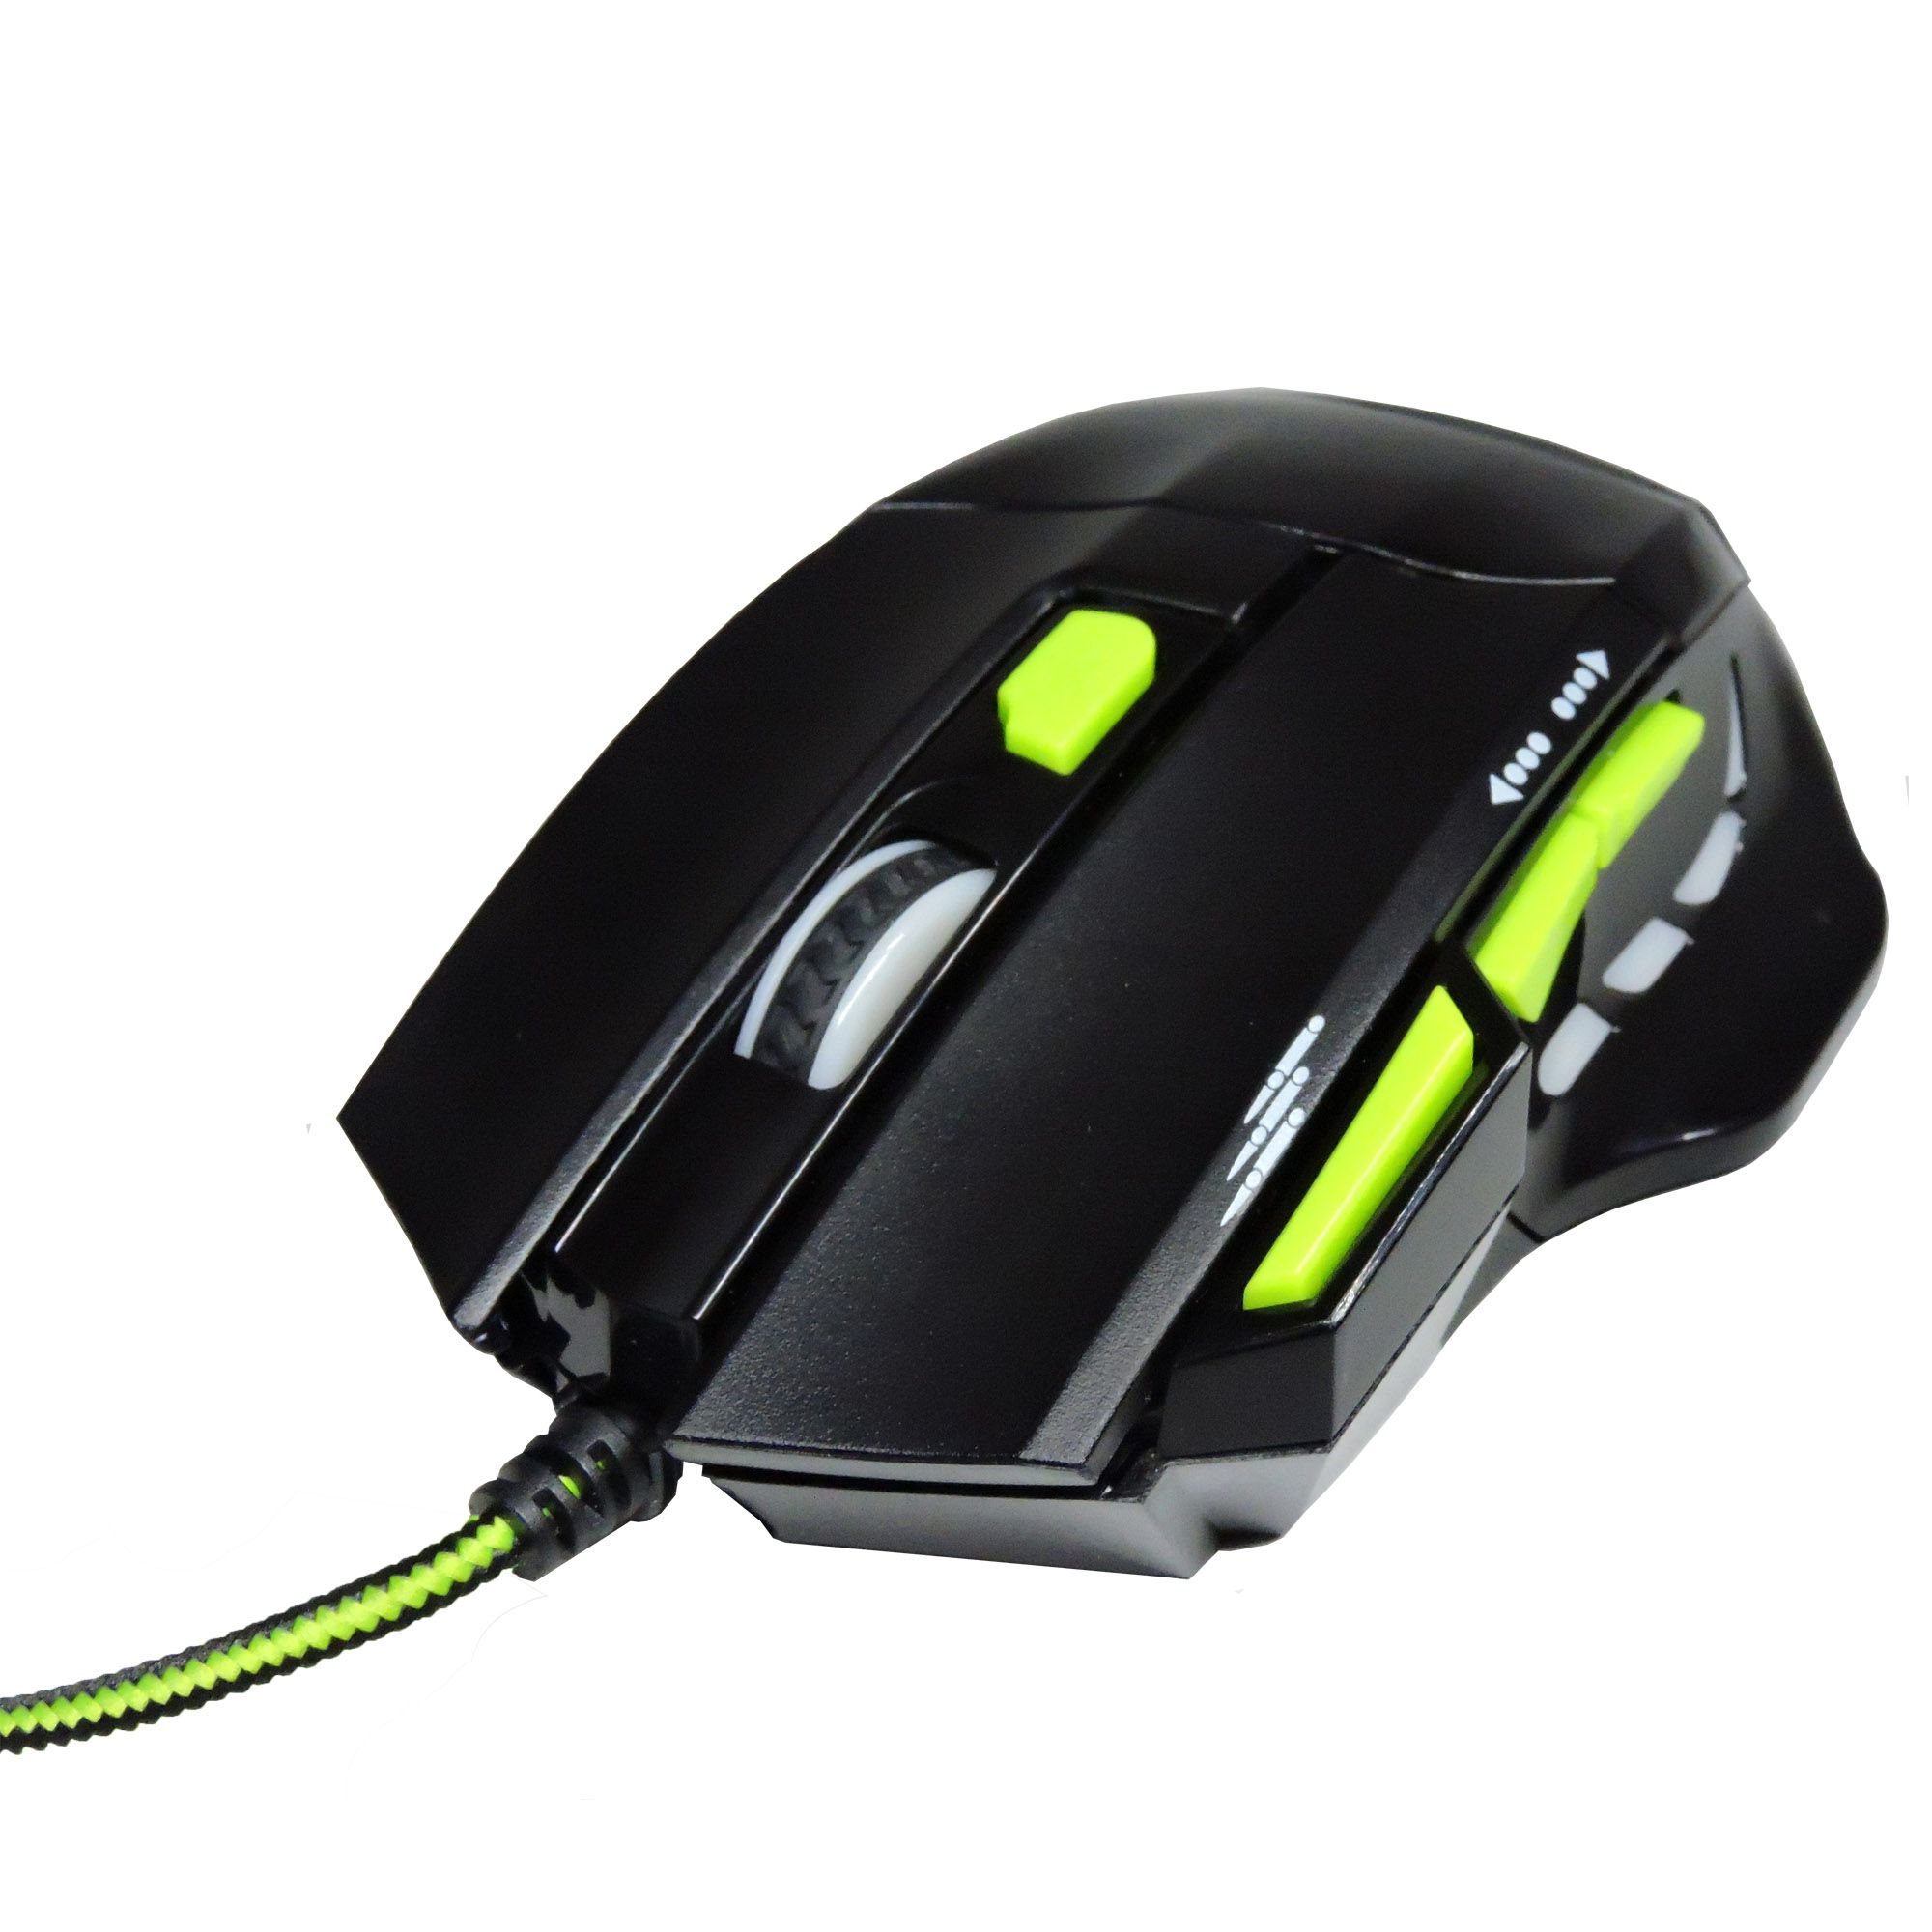 Mouse Gamer Fire Button Fio Nylon 2400 Dpi Multilaser